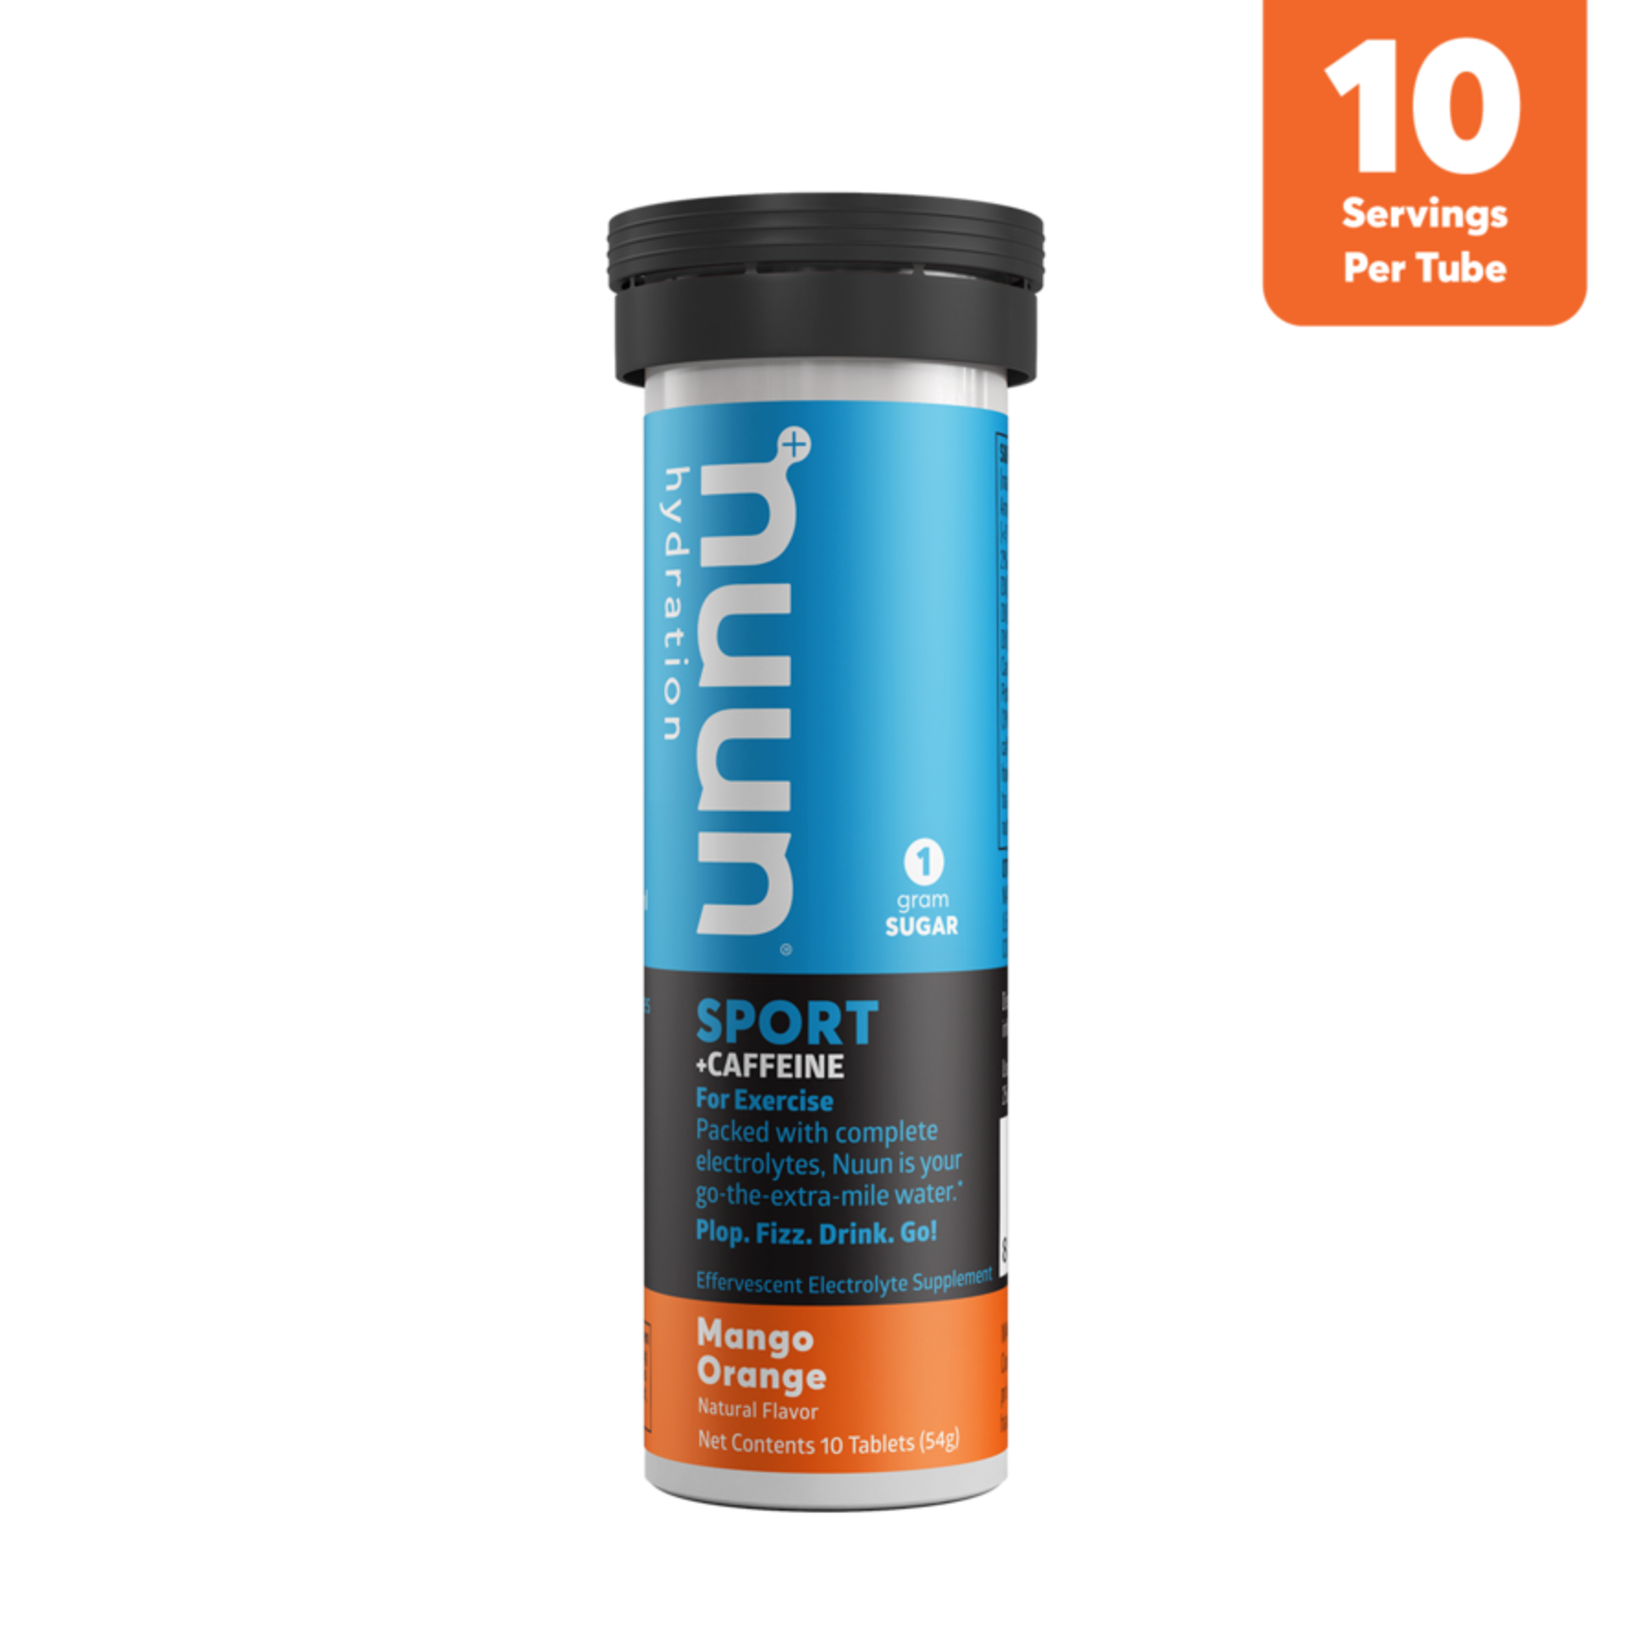 NUUN Sport - Mangue orange et caféine